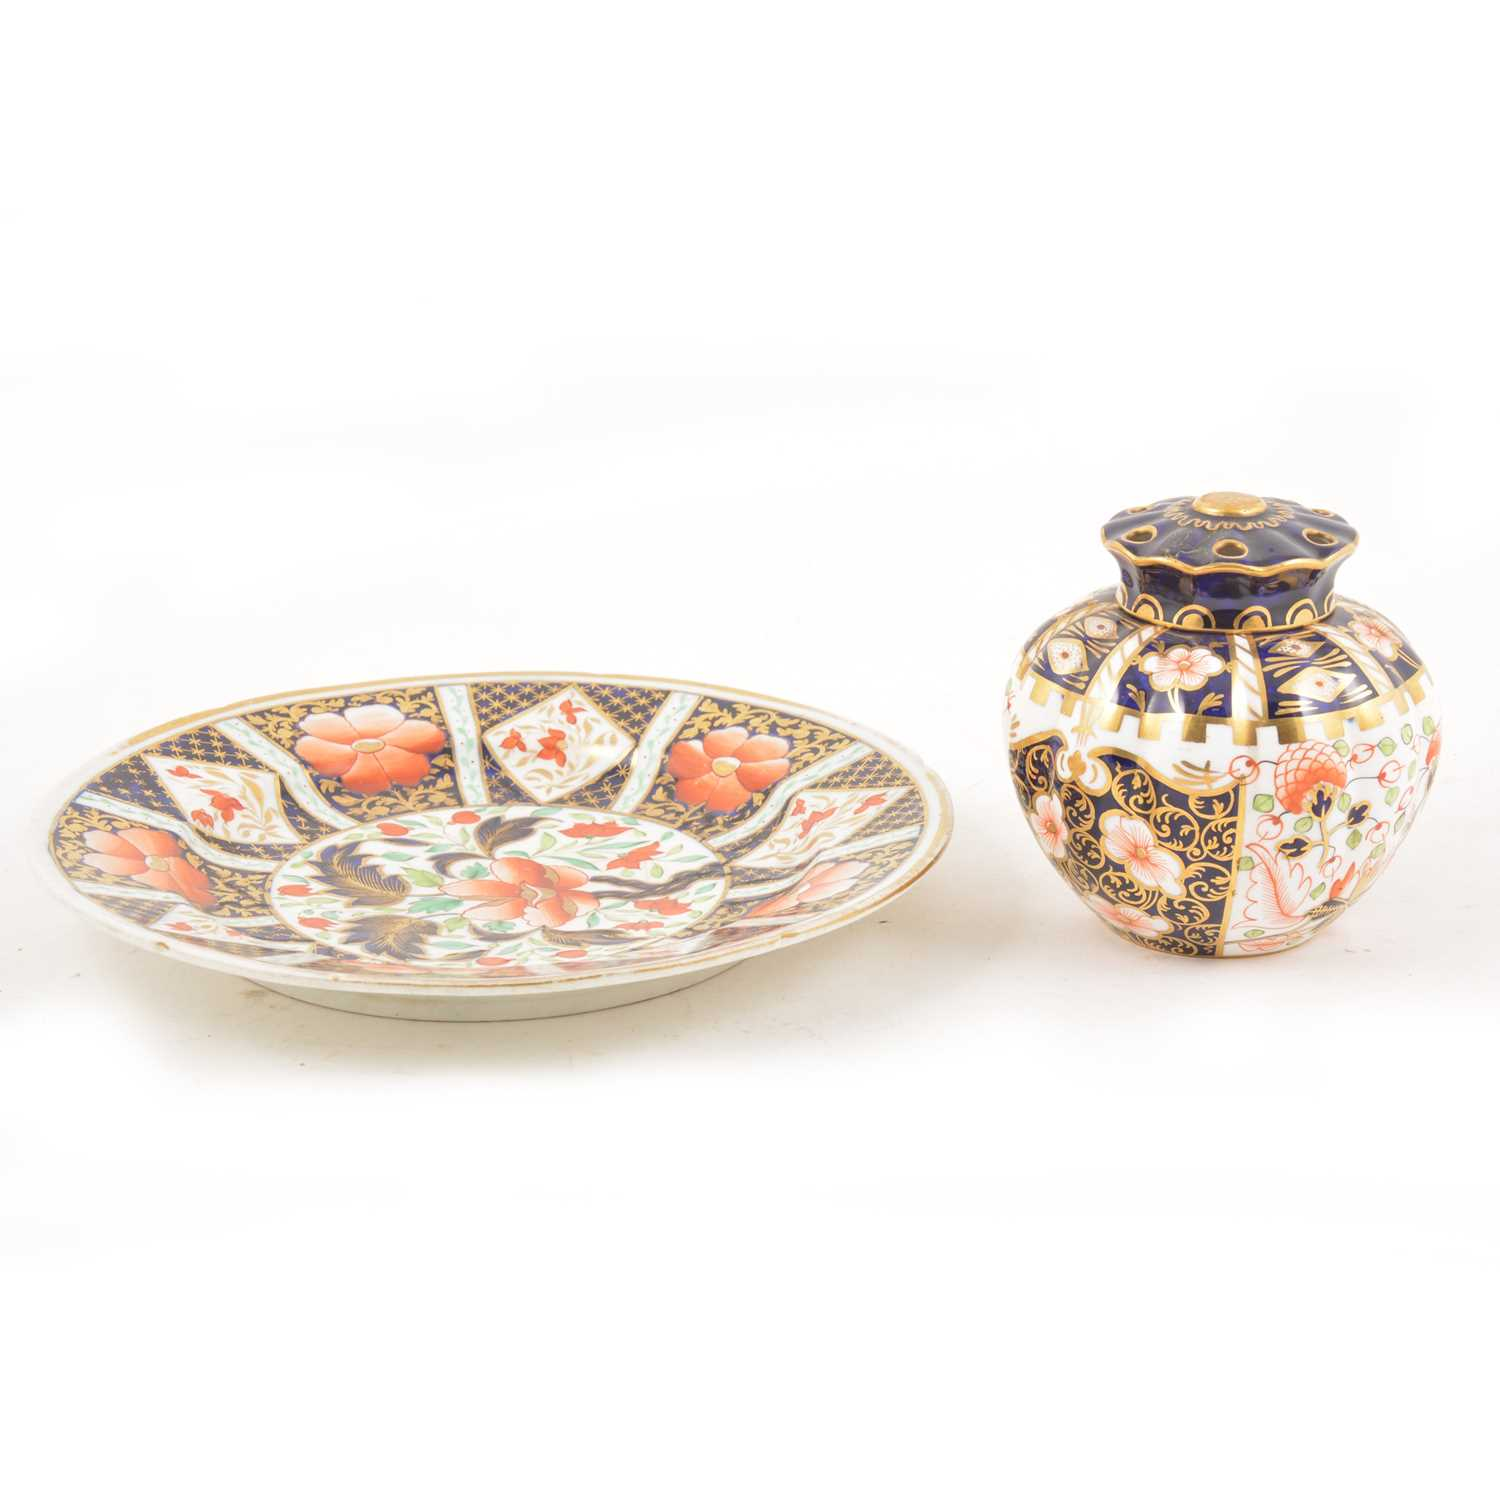 Lot 31 - A Royal Crown Derby pot pourri vase and cover, and an Imari pattern plate.